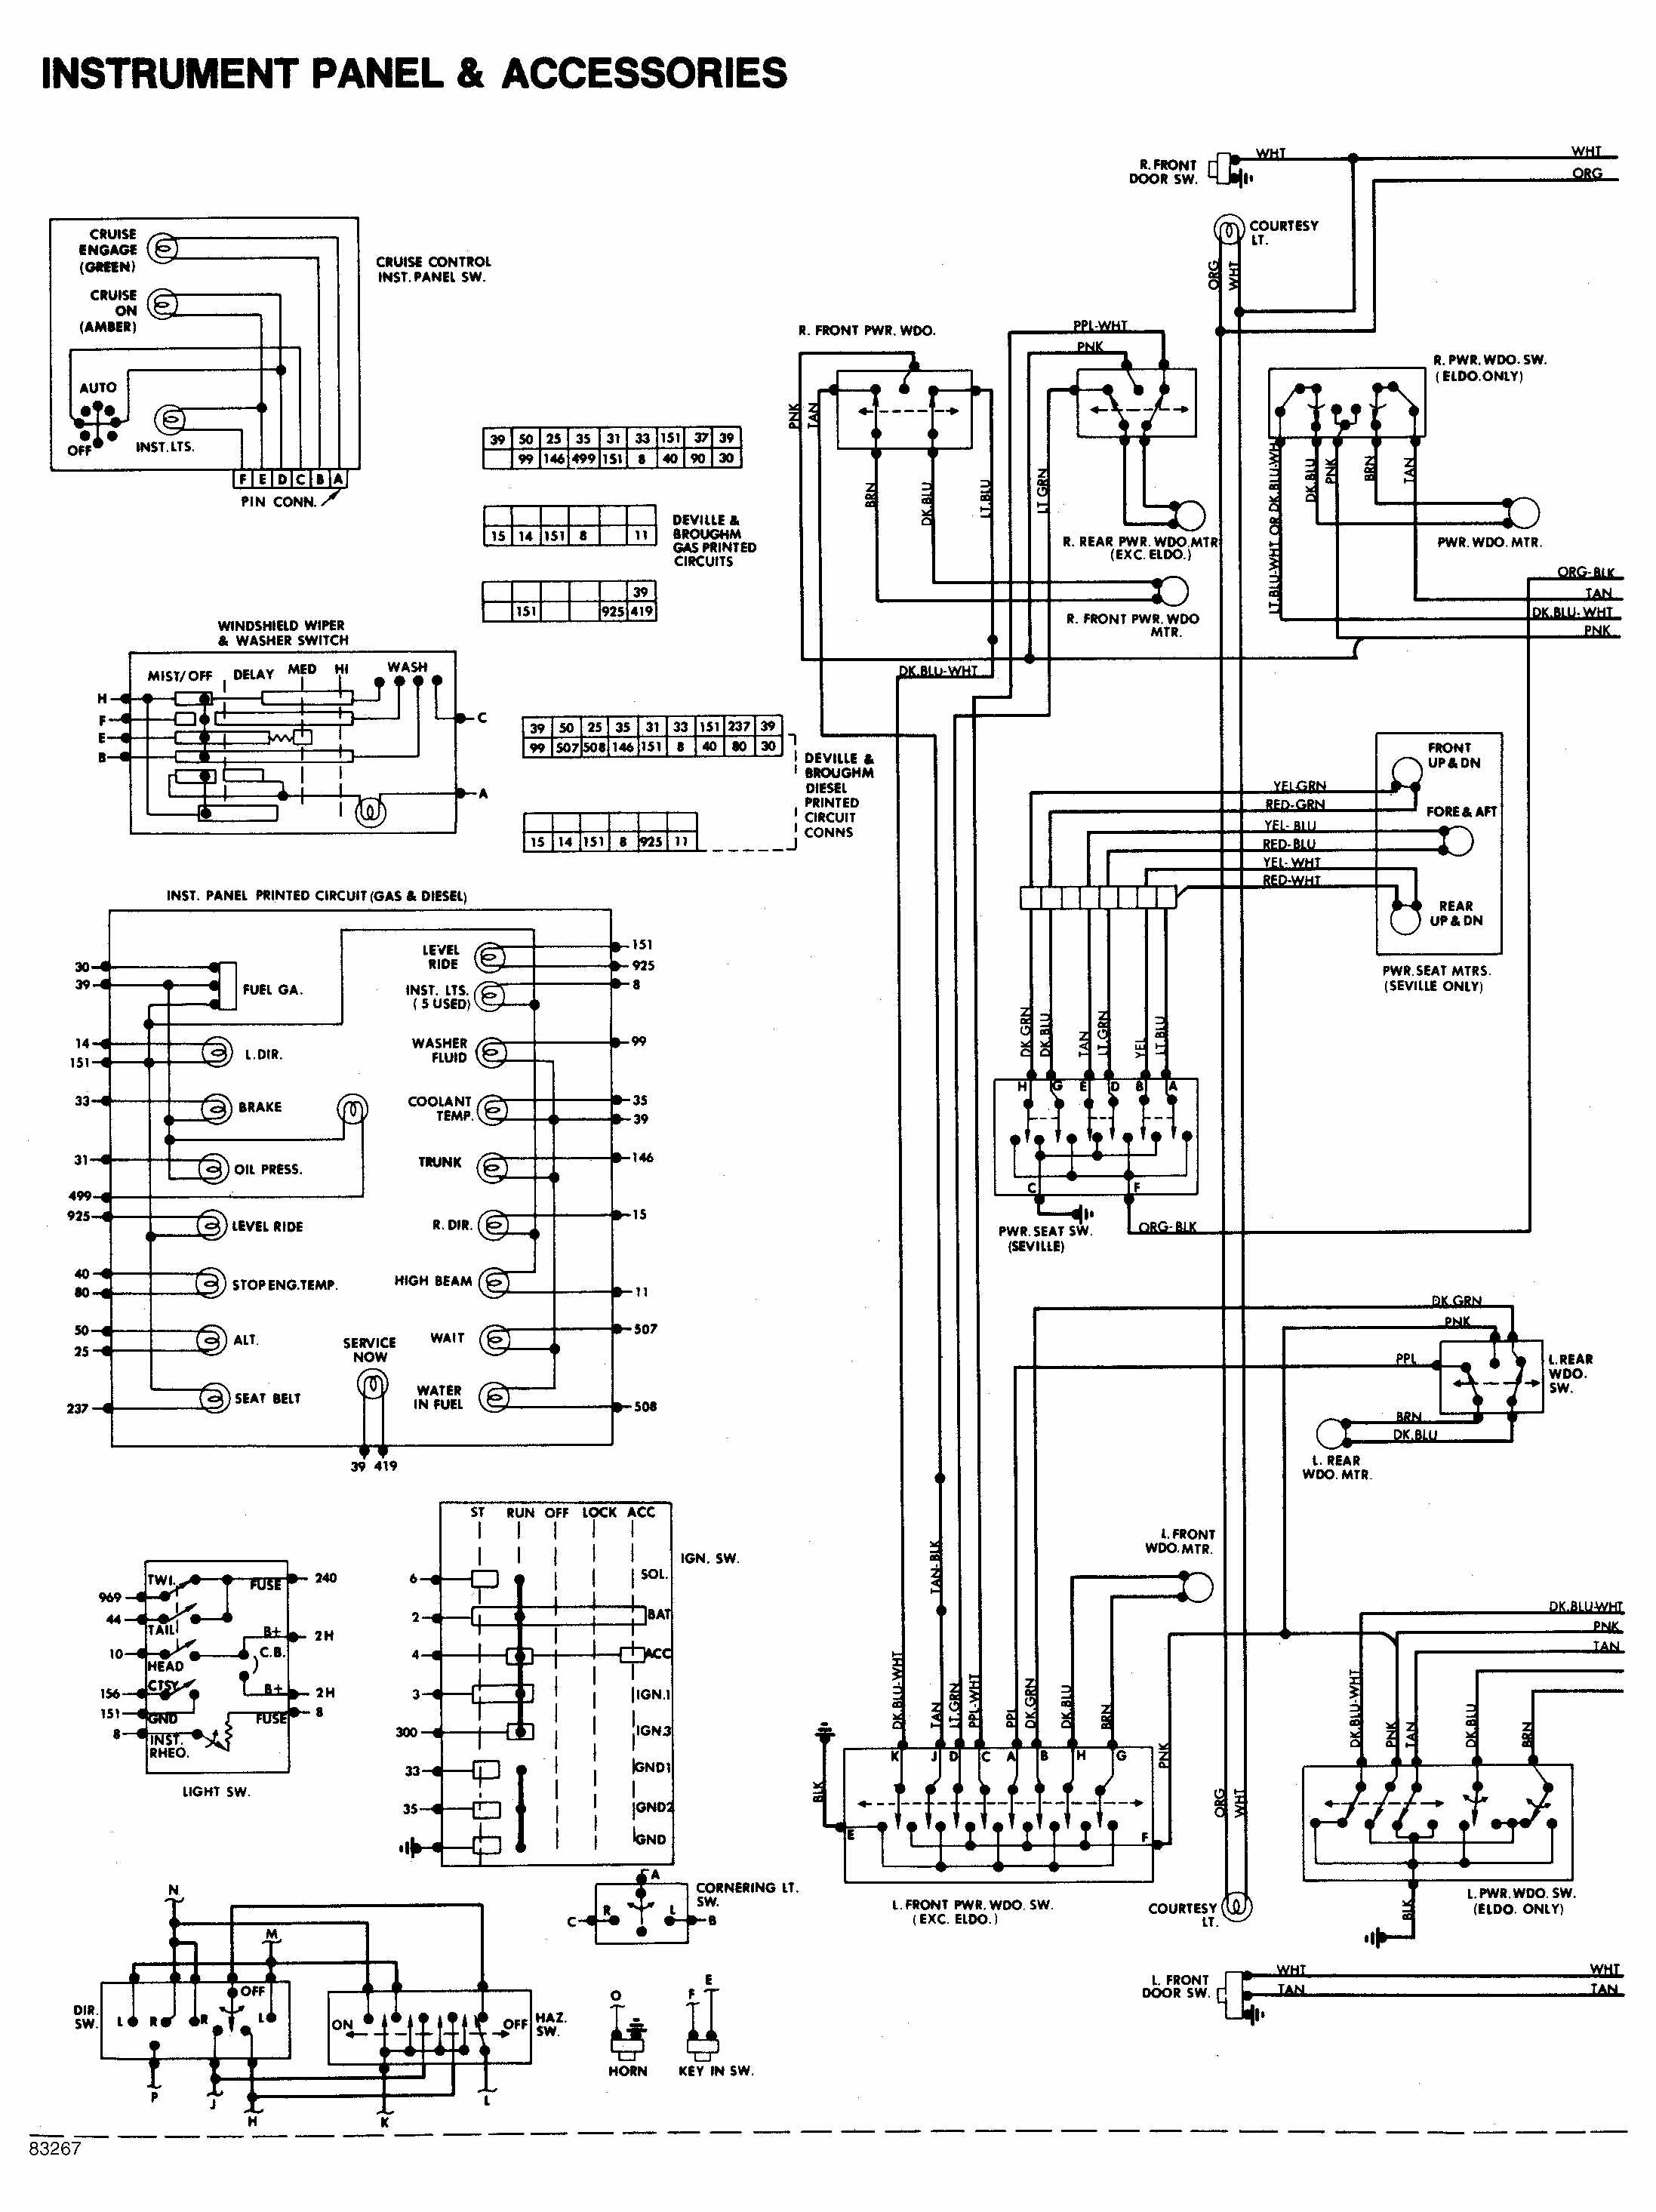 1965 vw wiring diagram wiring diagramwiring diagram for 1969 buick skylark get free image about wiring